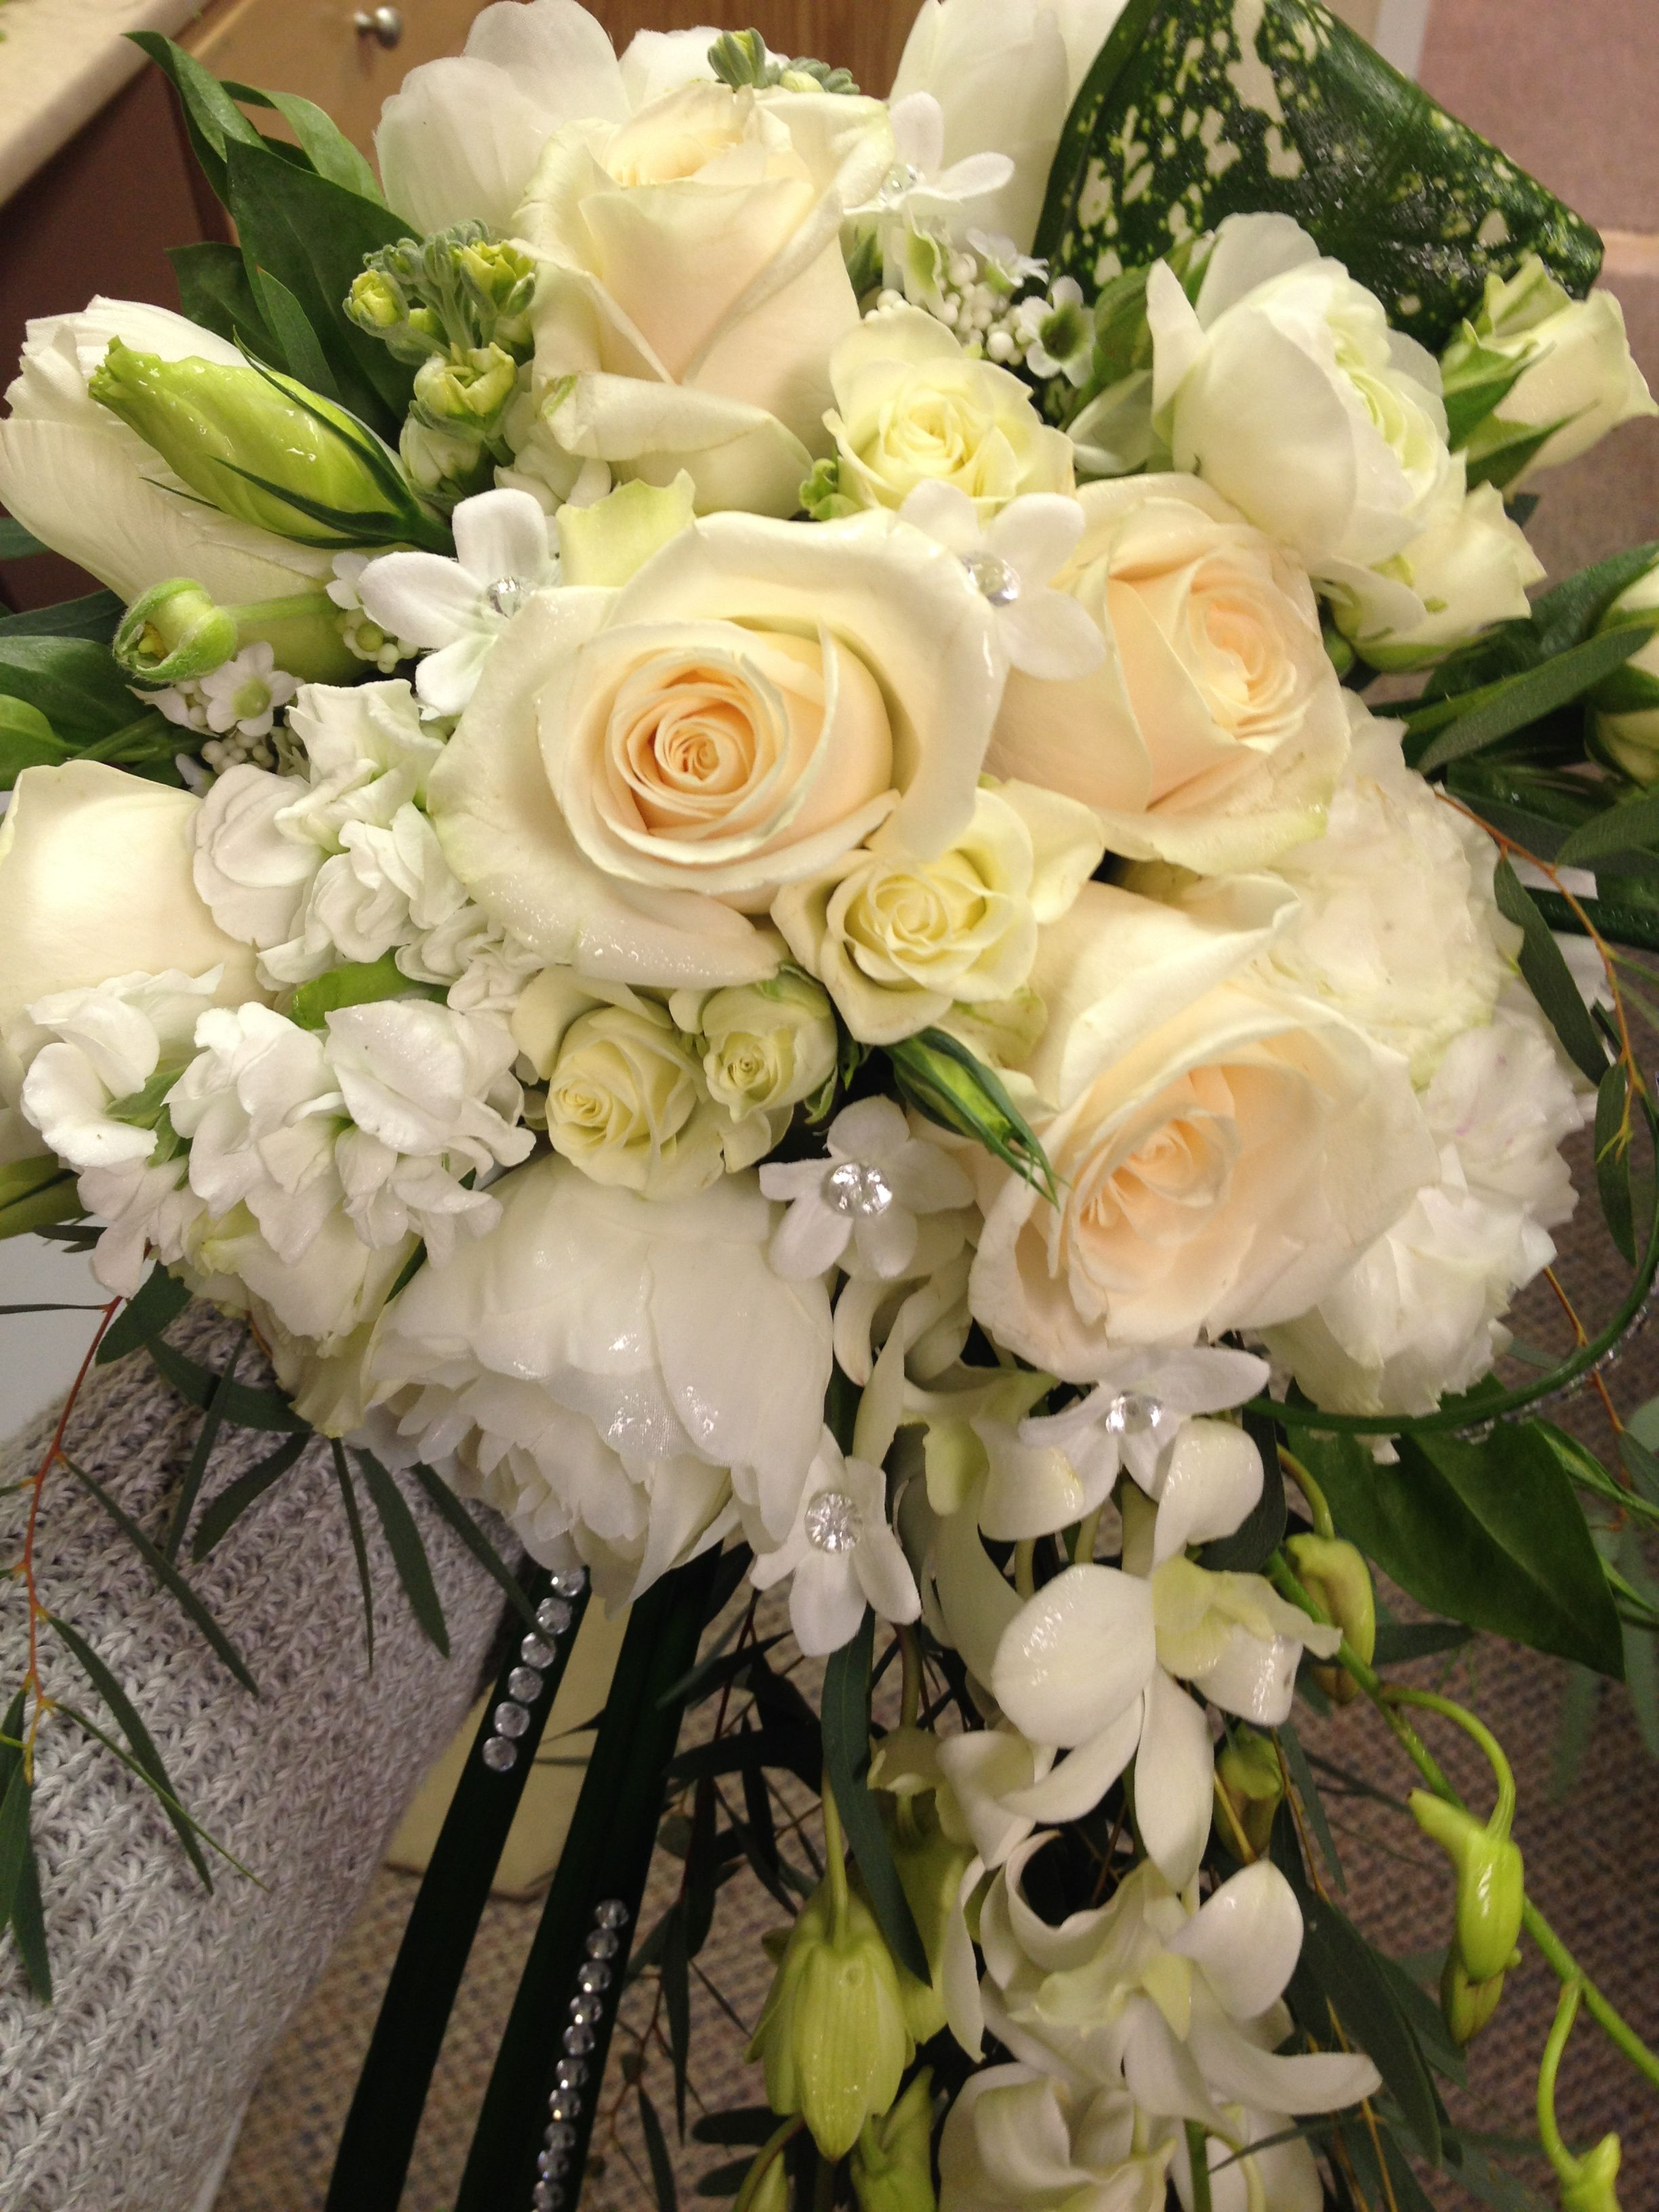 This stunning cascade bouquet features roses, peonies